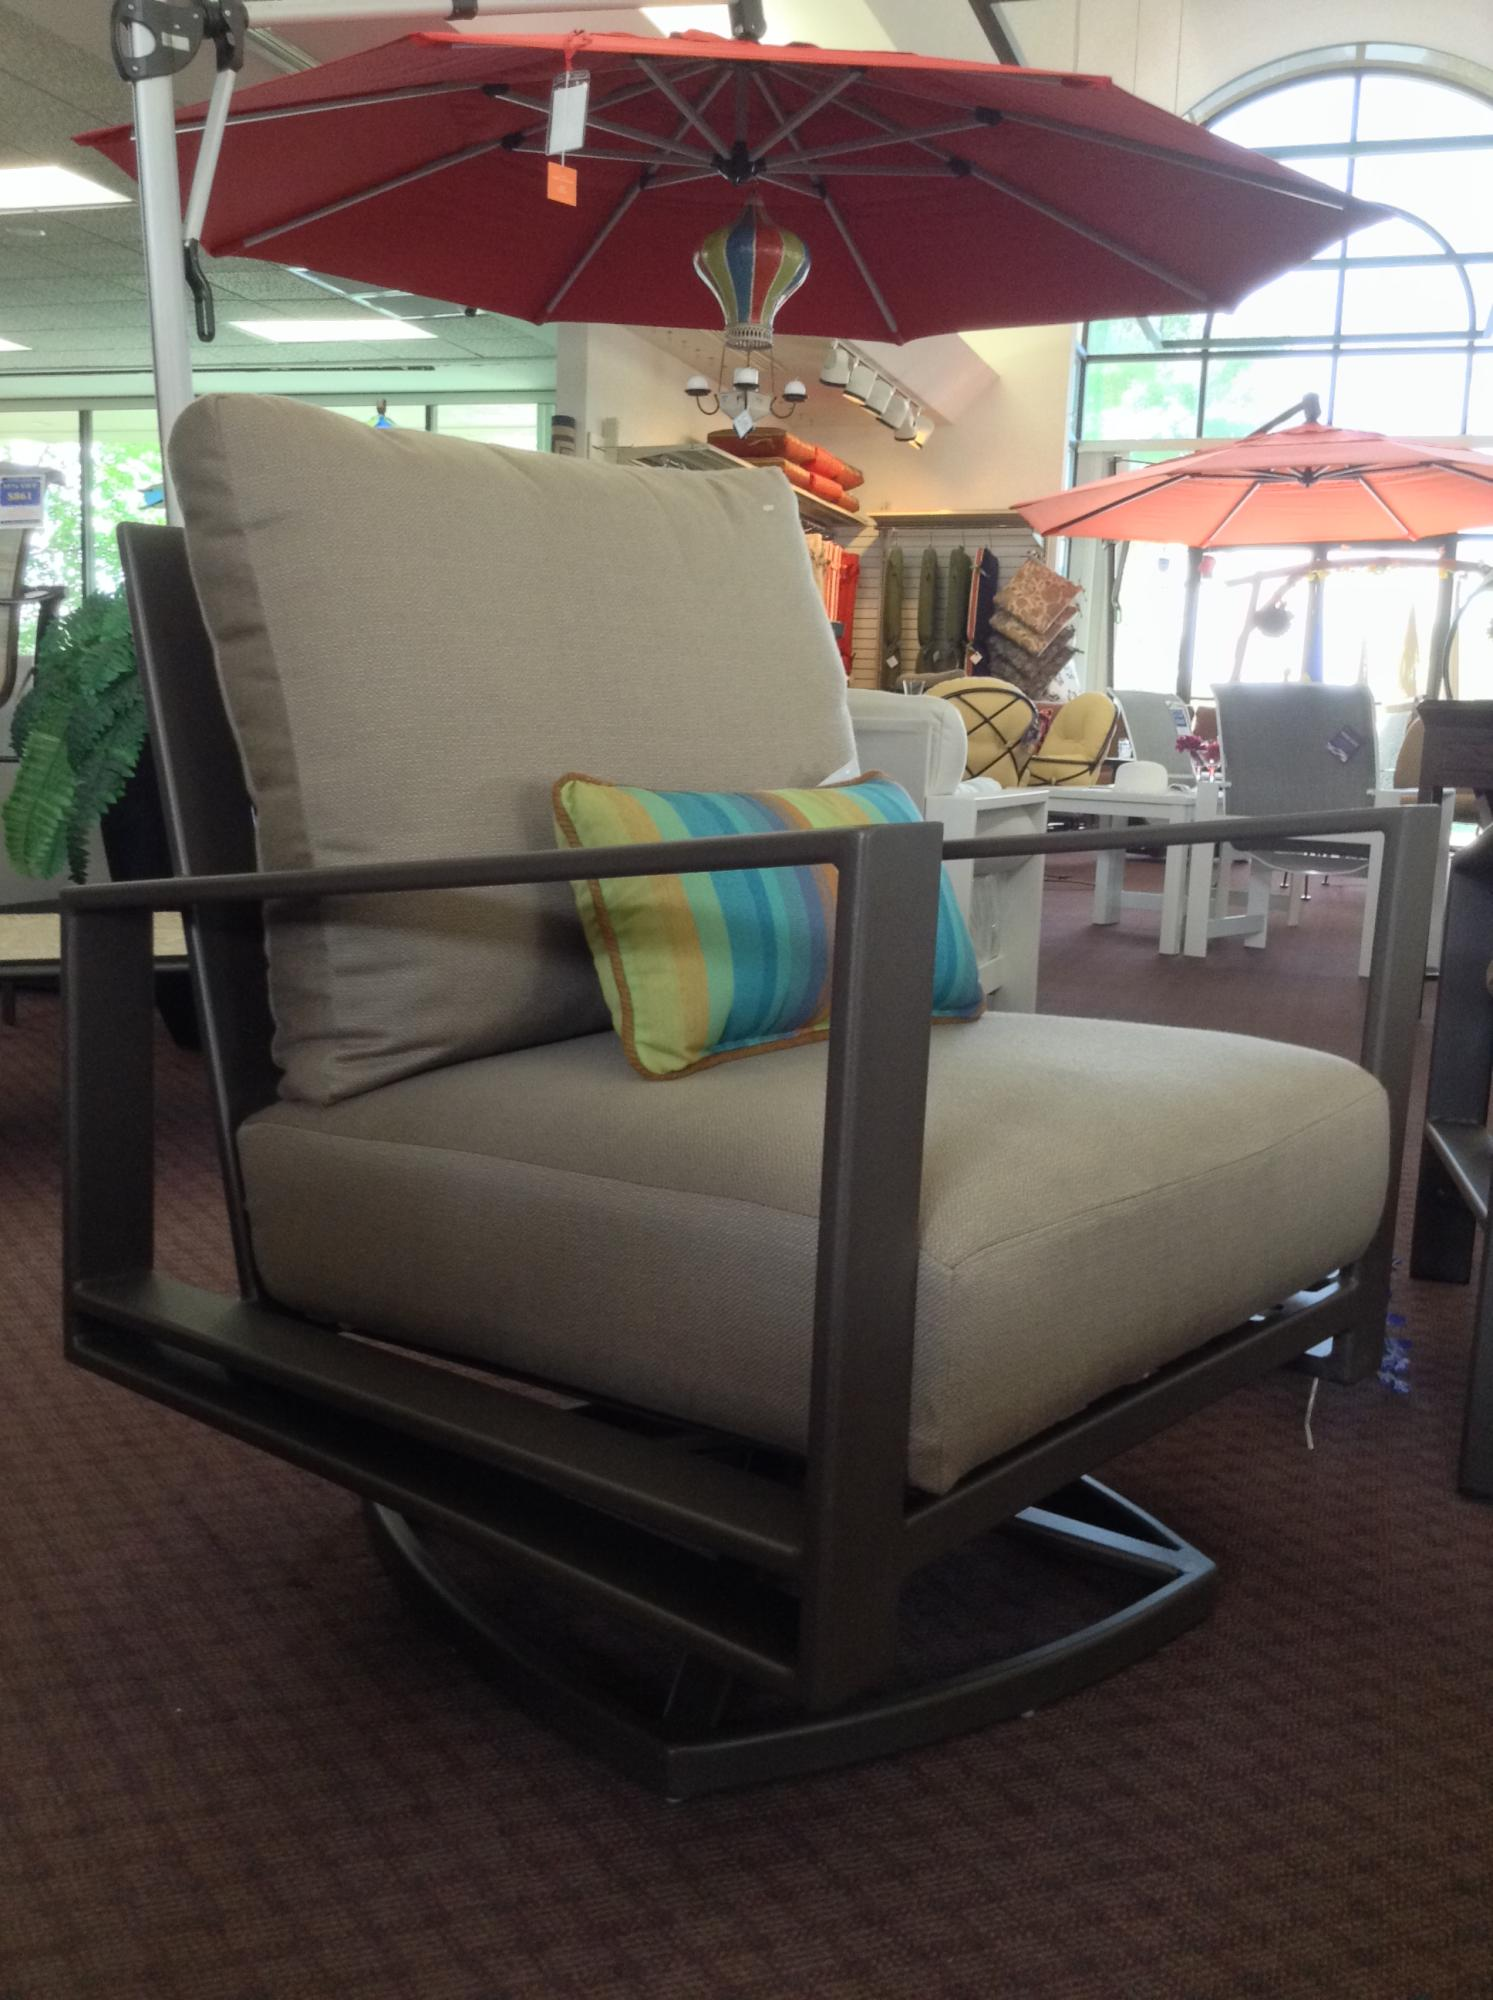 "Gios Swivel Rocker Lounge Chair W=32"" D=33"" H=39"" SH=18.25"" AH=26.5"""